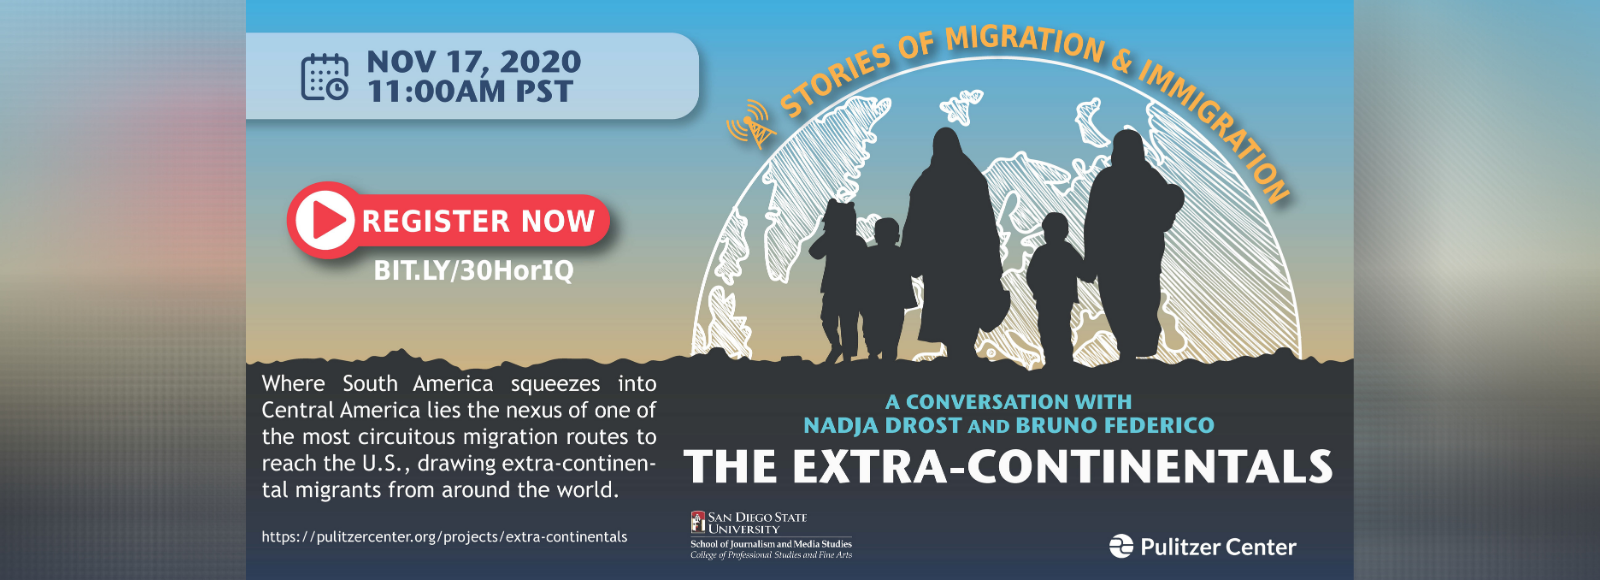 JMS Partners with Pulitzer Center to Launch Webinar Series